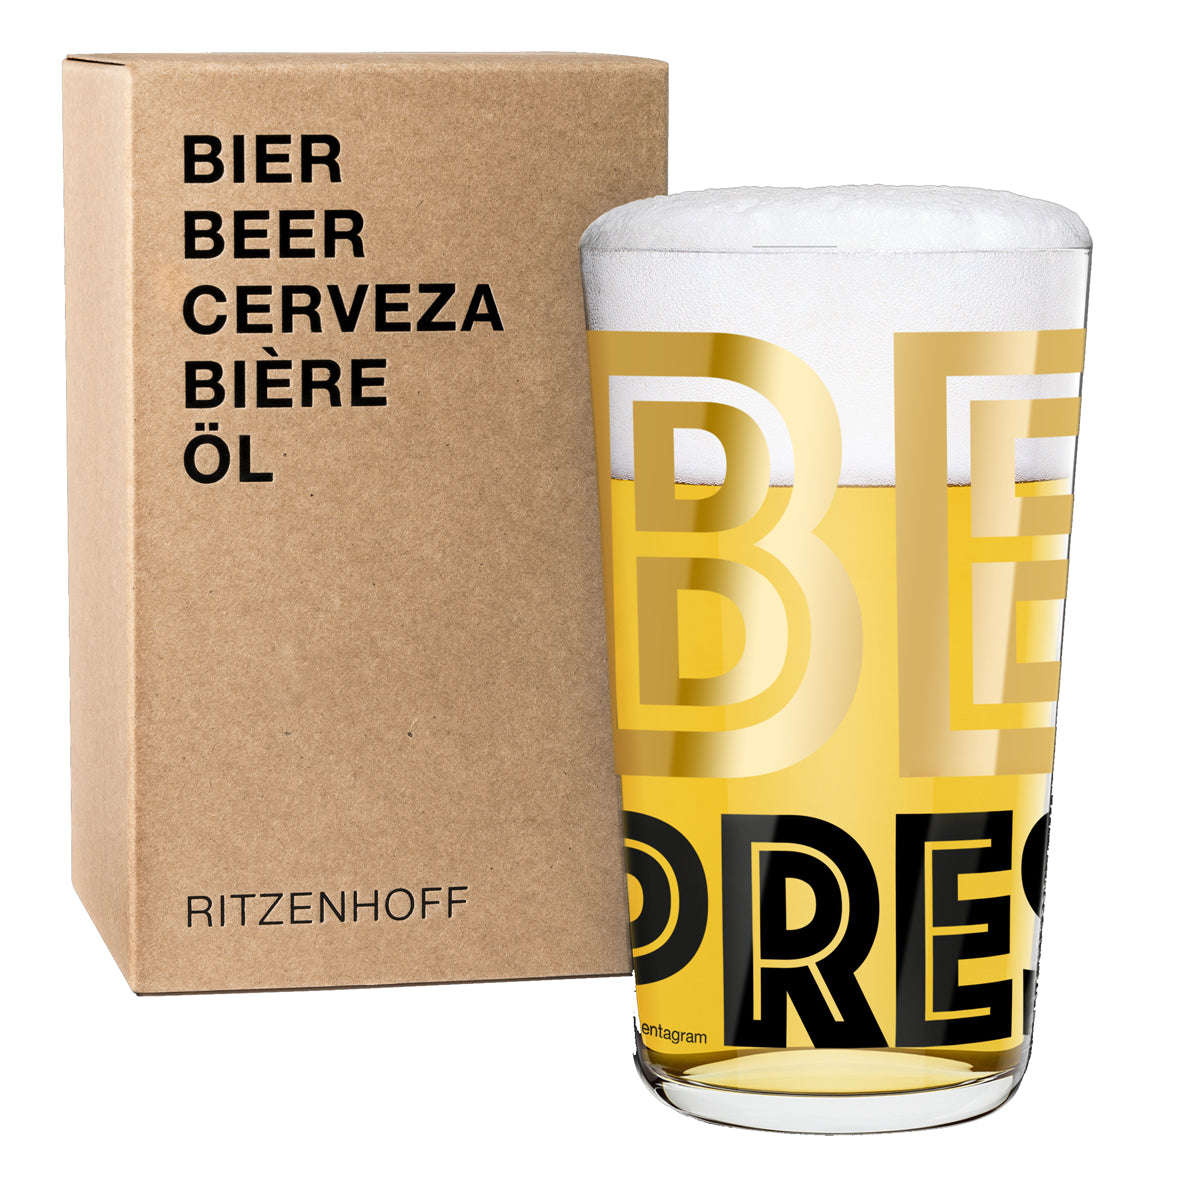 RITZENHOFF | The Next 25 Years | Beer Glass | Justus Oehler/Pentagram